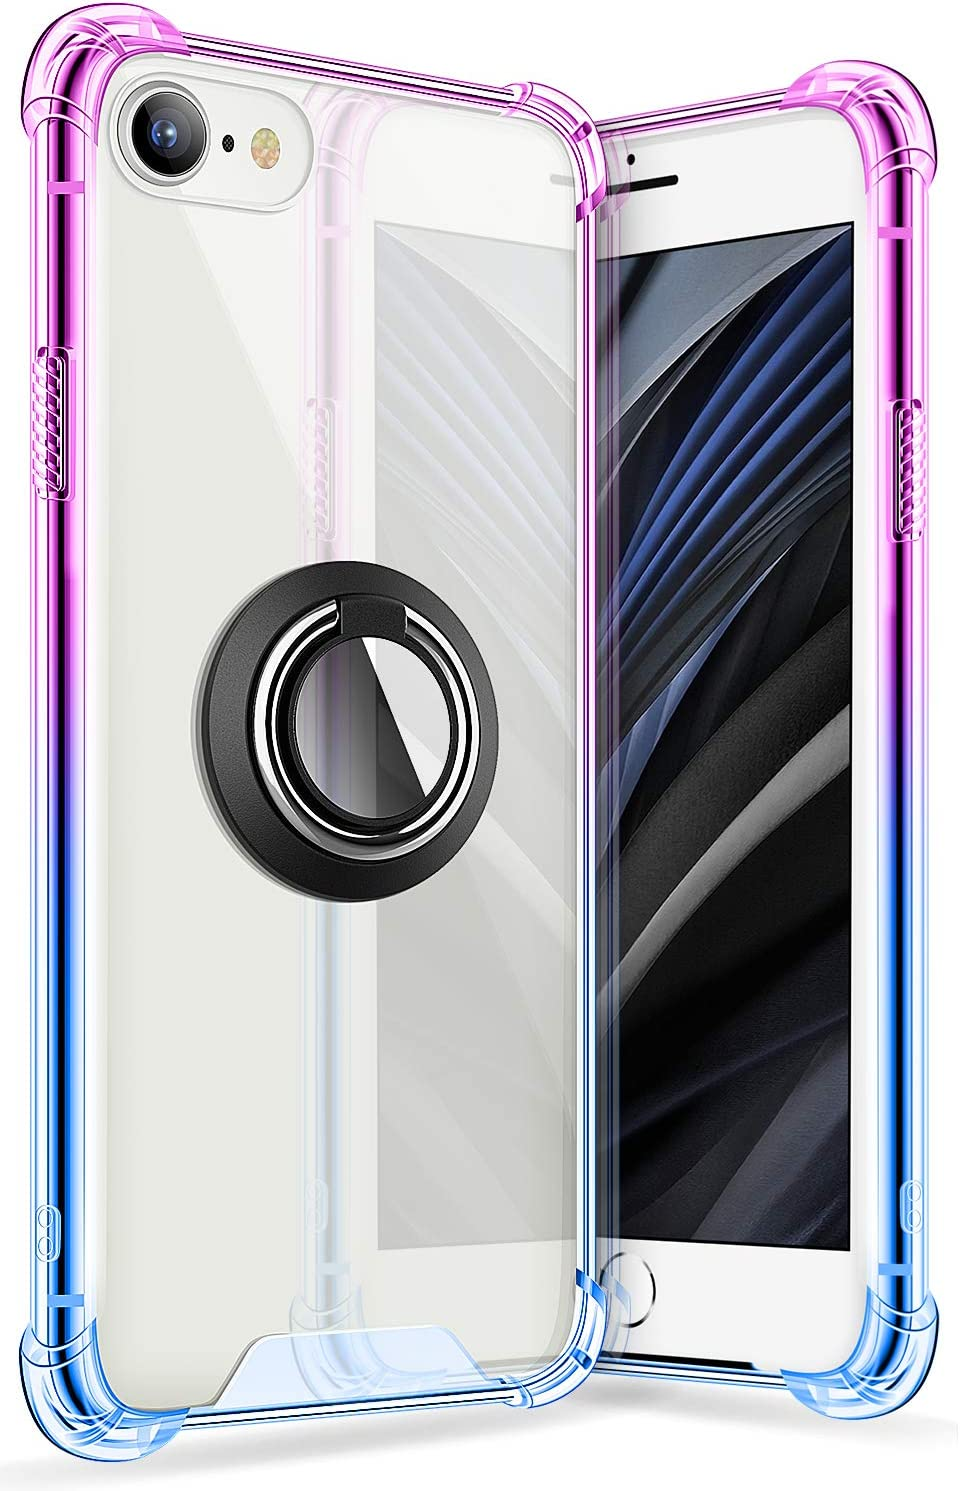 iPhone SE 2 Case 4.7 Inch 2020, SANKMI Rugged Protective Clear Ring Kickstand and Work with Magnetic Car Mount Colorful Case for iPhone SE 2nd Generation iPhone 8 iPhone 7(Purple Blue)